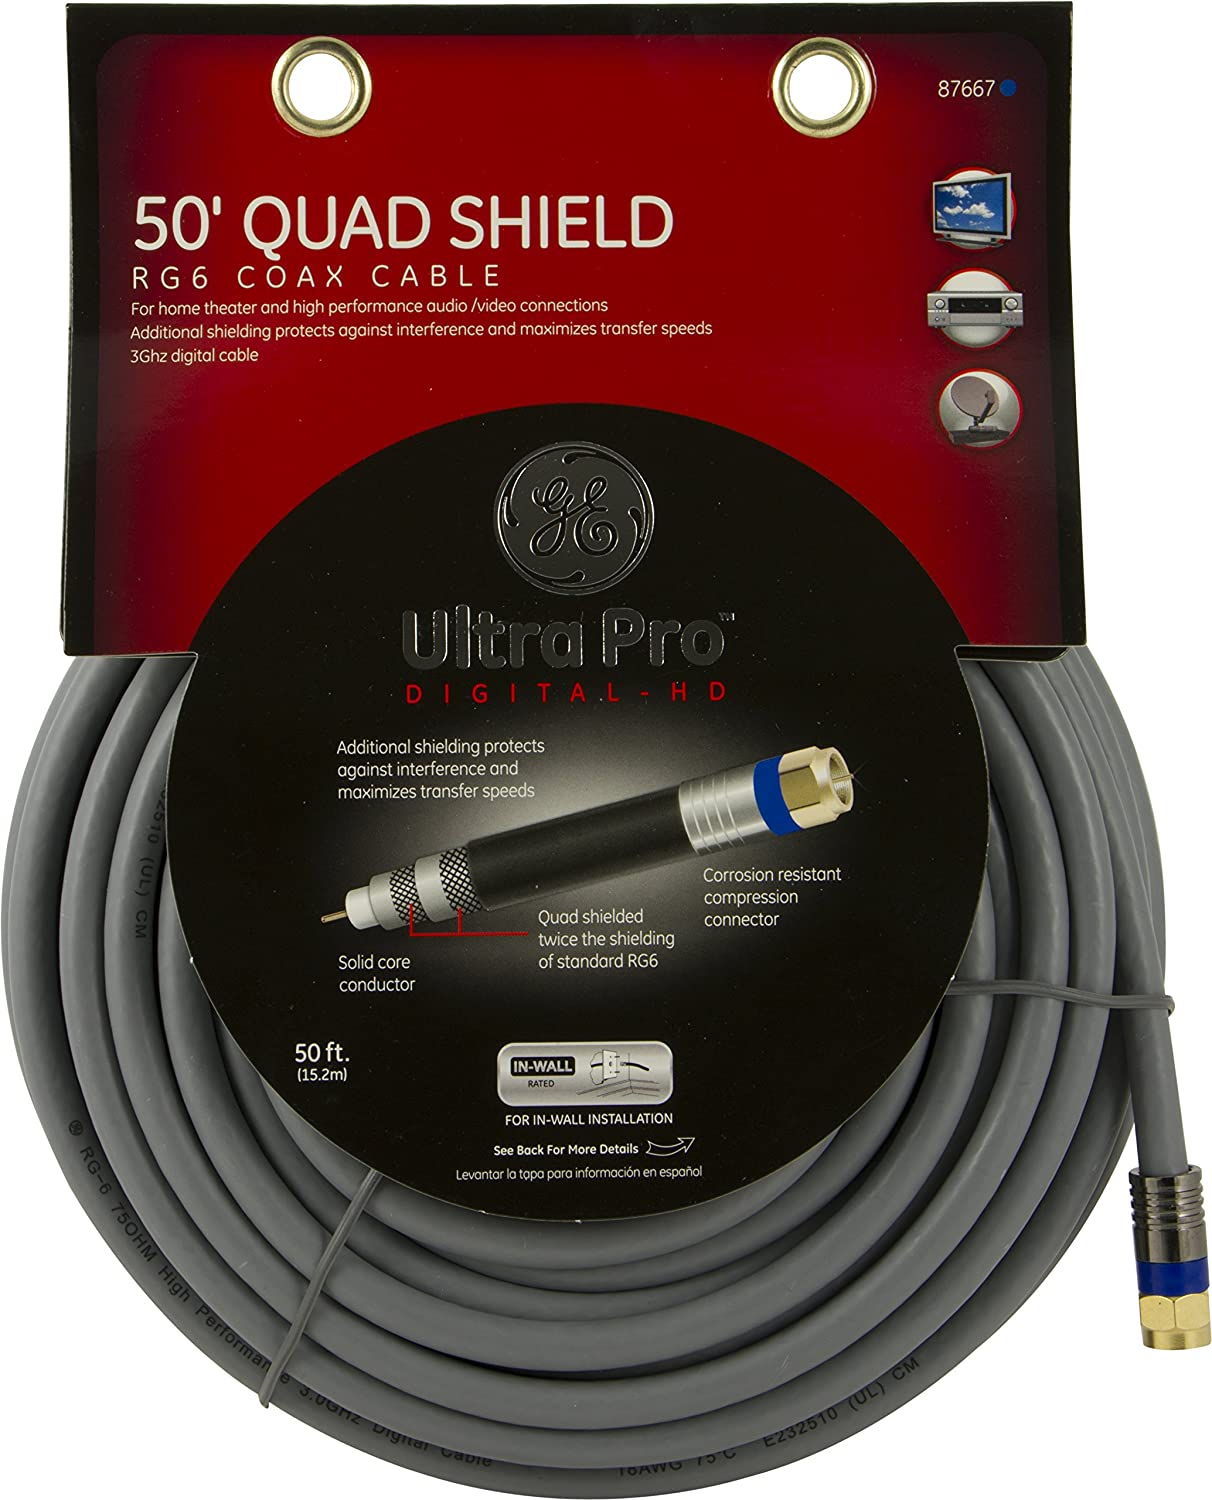 Amazon.com: GE 87667 Ultra Pro 50-Ft RG6 Quad Shield Coax Cable with Compression F-Connectors - UL In-Wall Rated: Home Audio & Theater